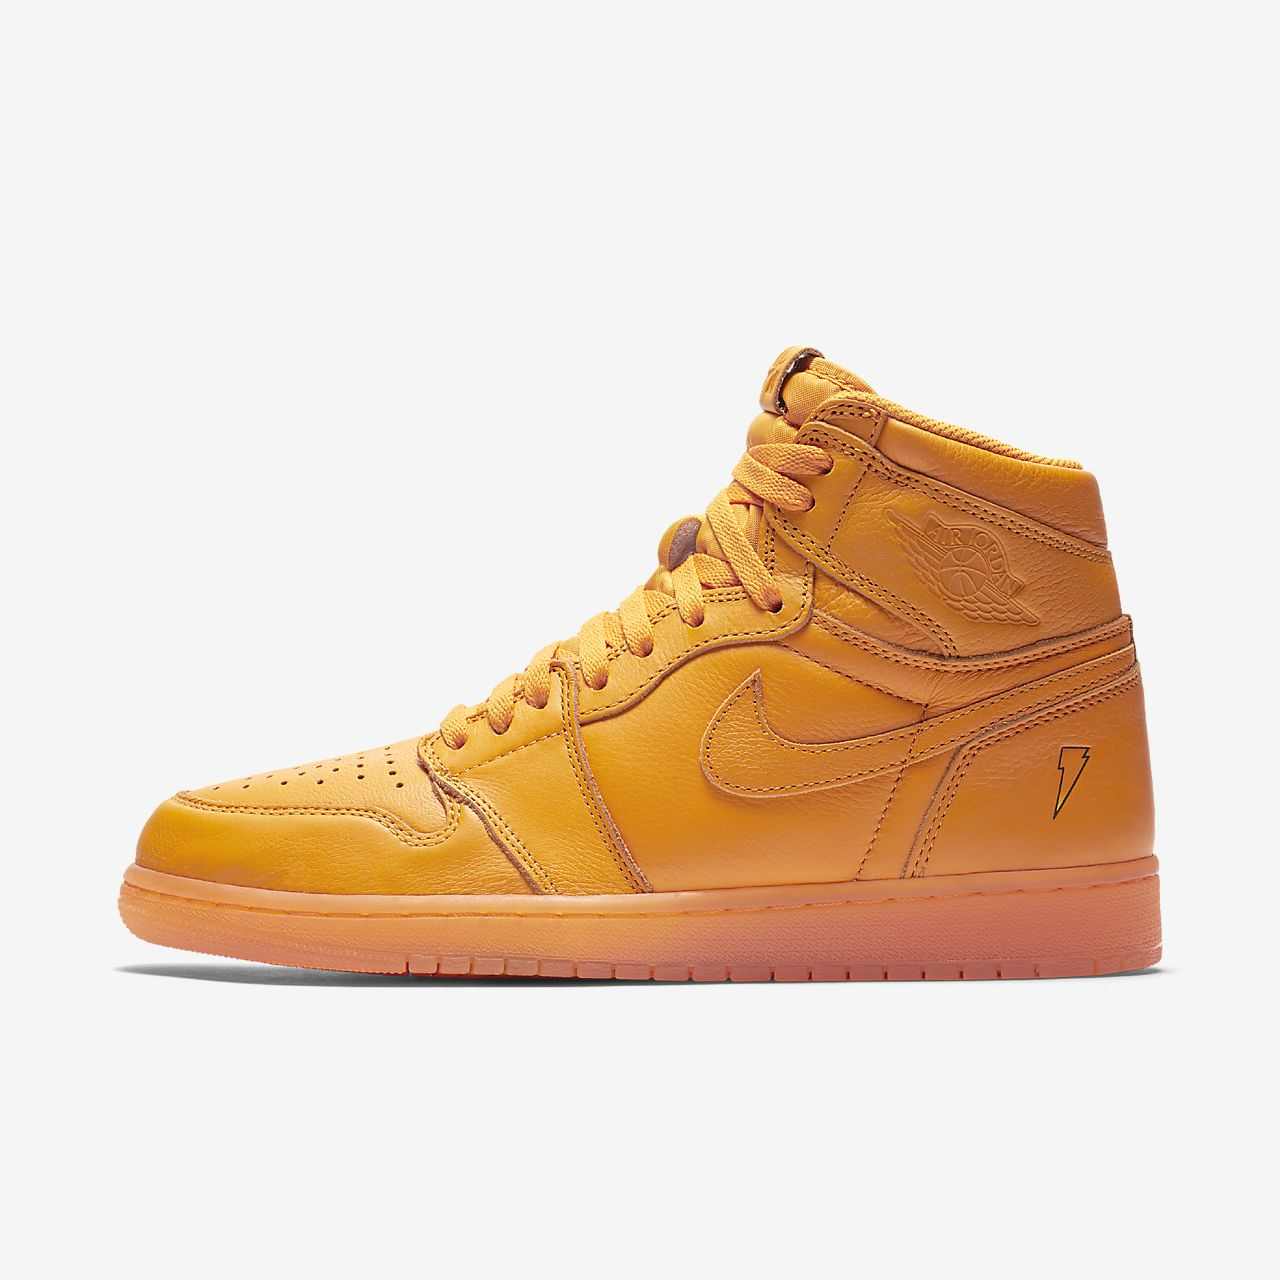 Nike Air Jordan 1 Retr OG GATORADE UK 12